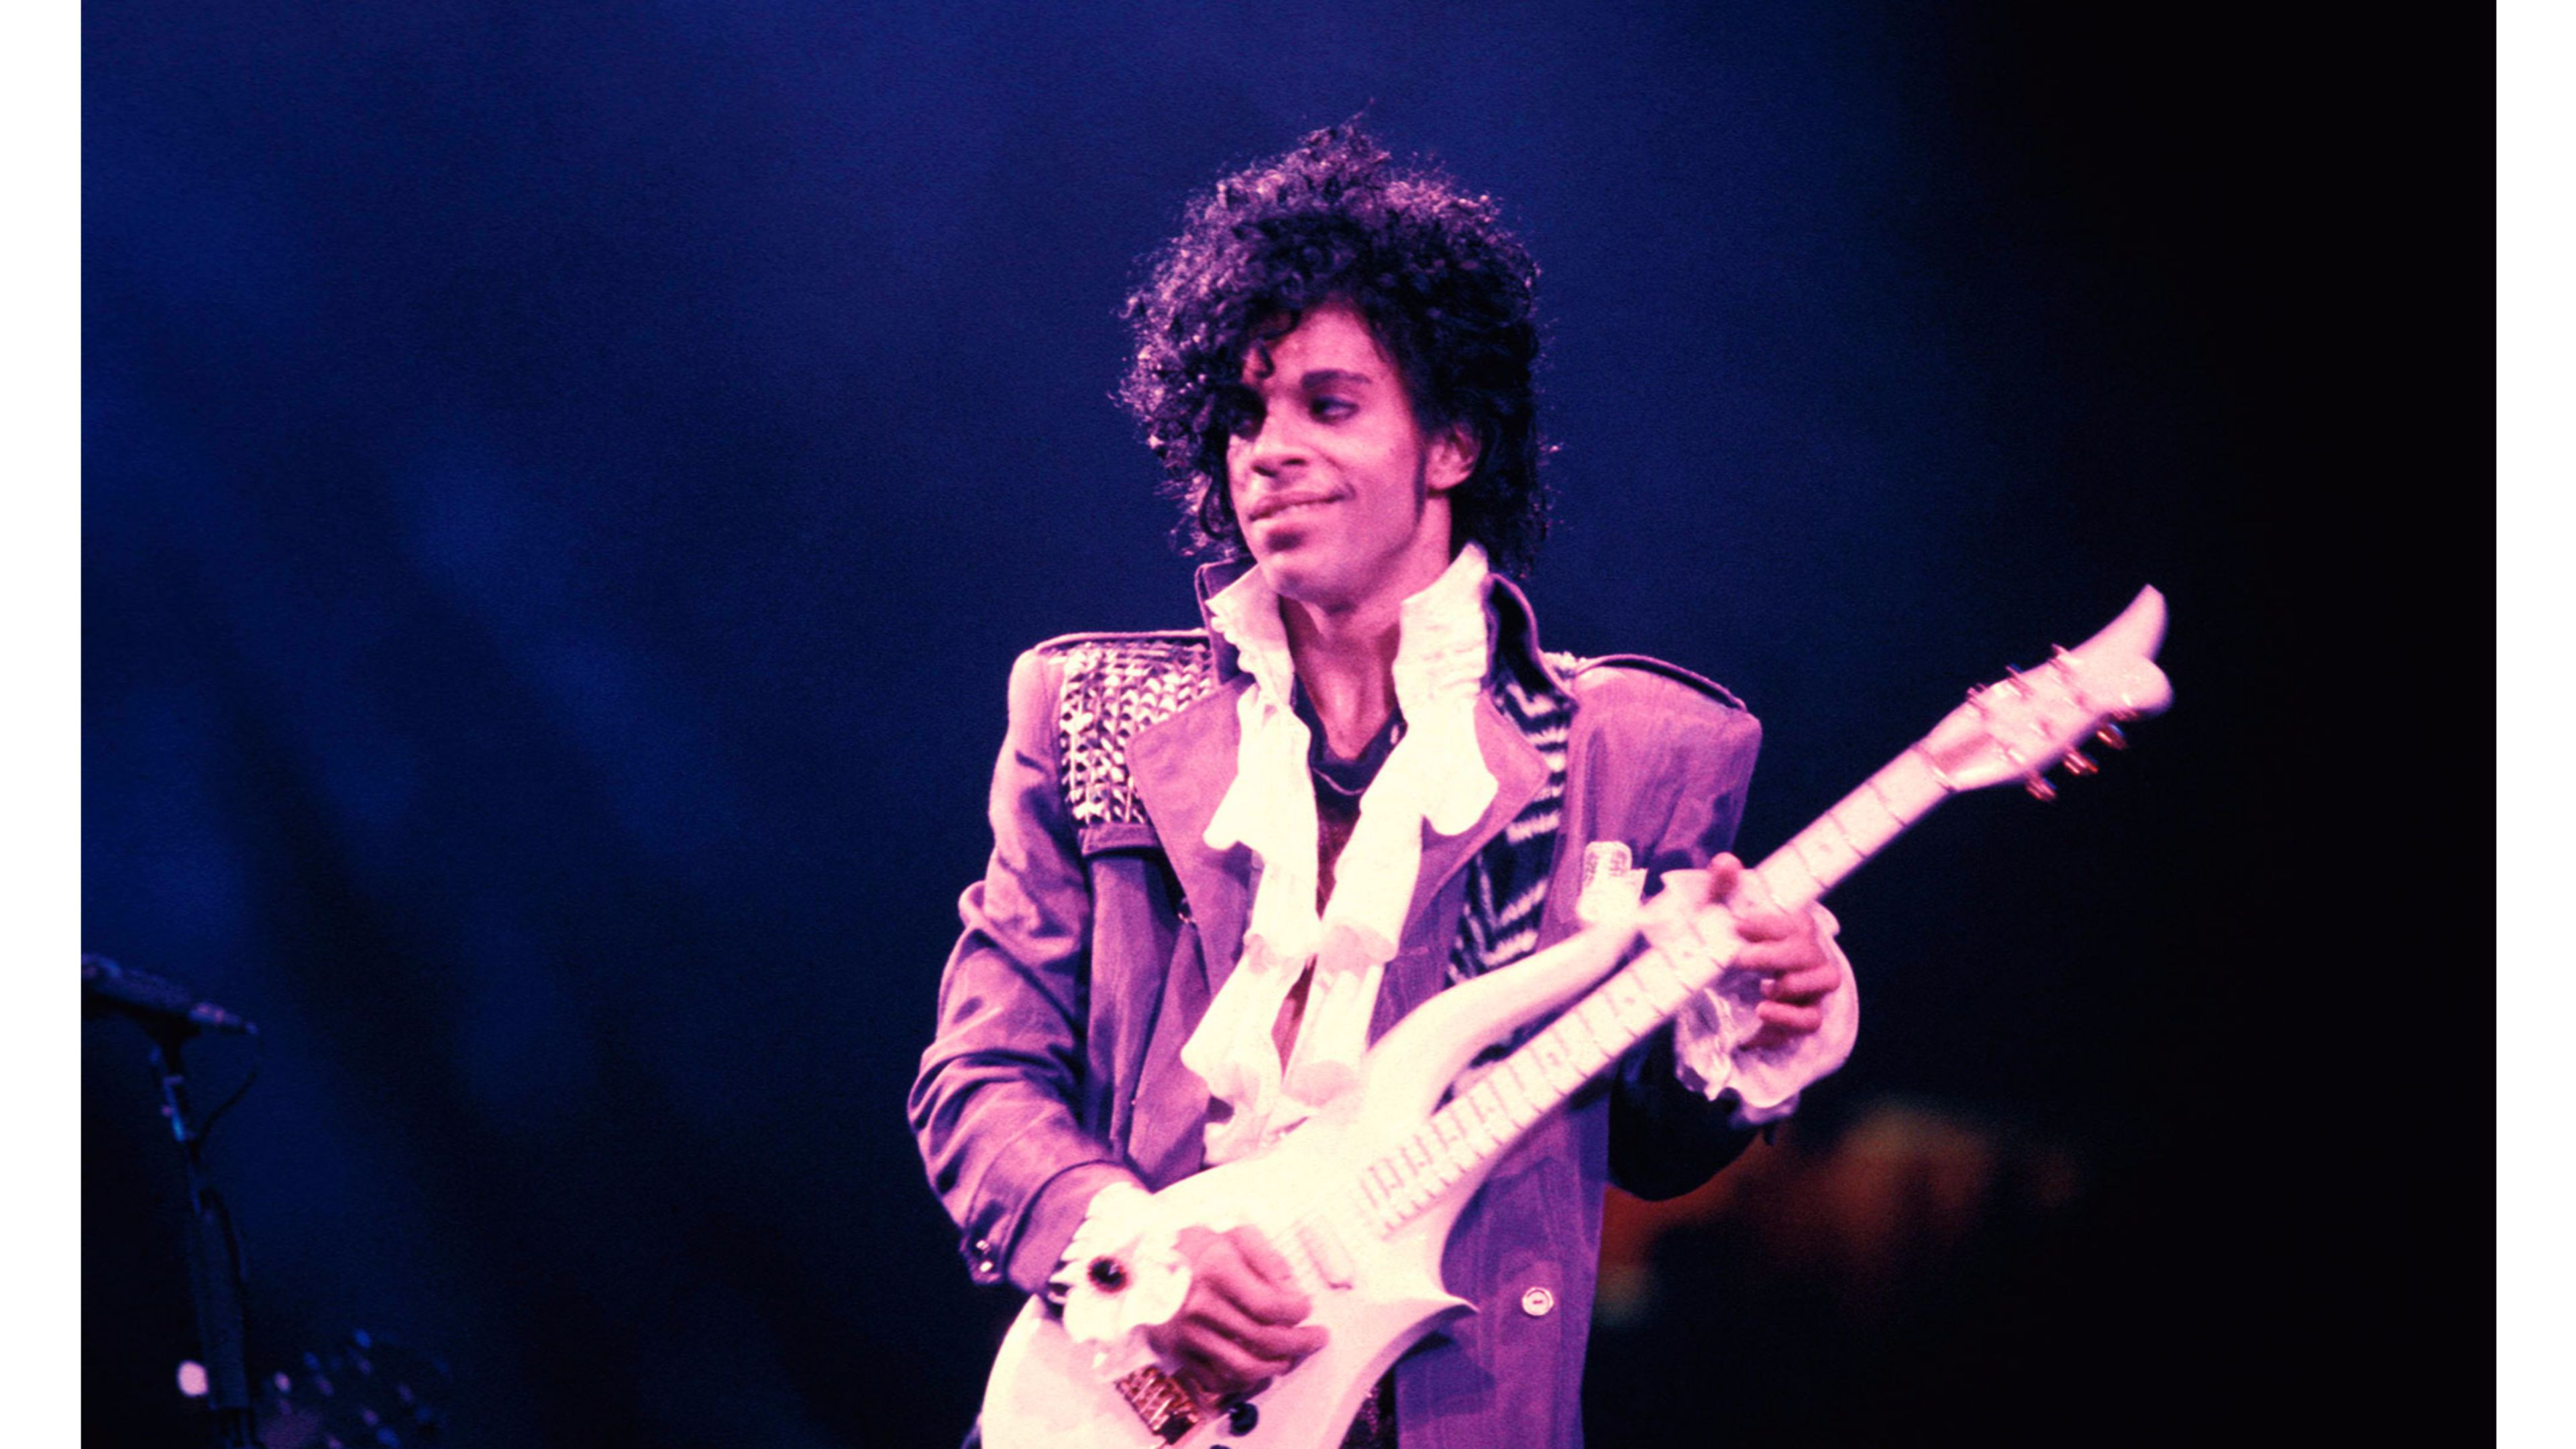 Prince wallpapers top free prince backgrounds - Prince wallpaper ...